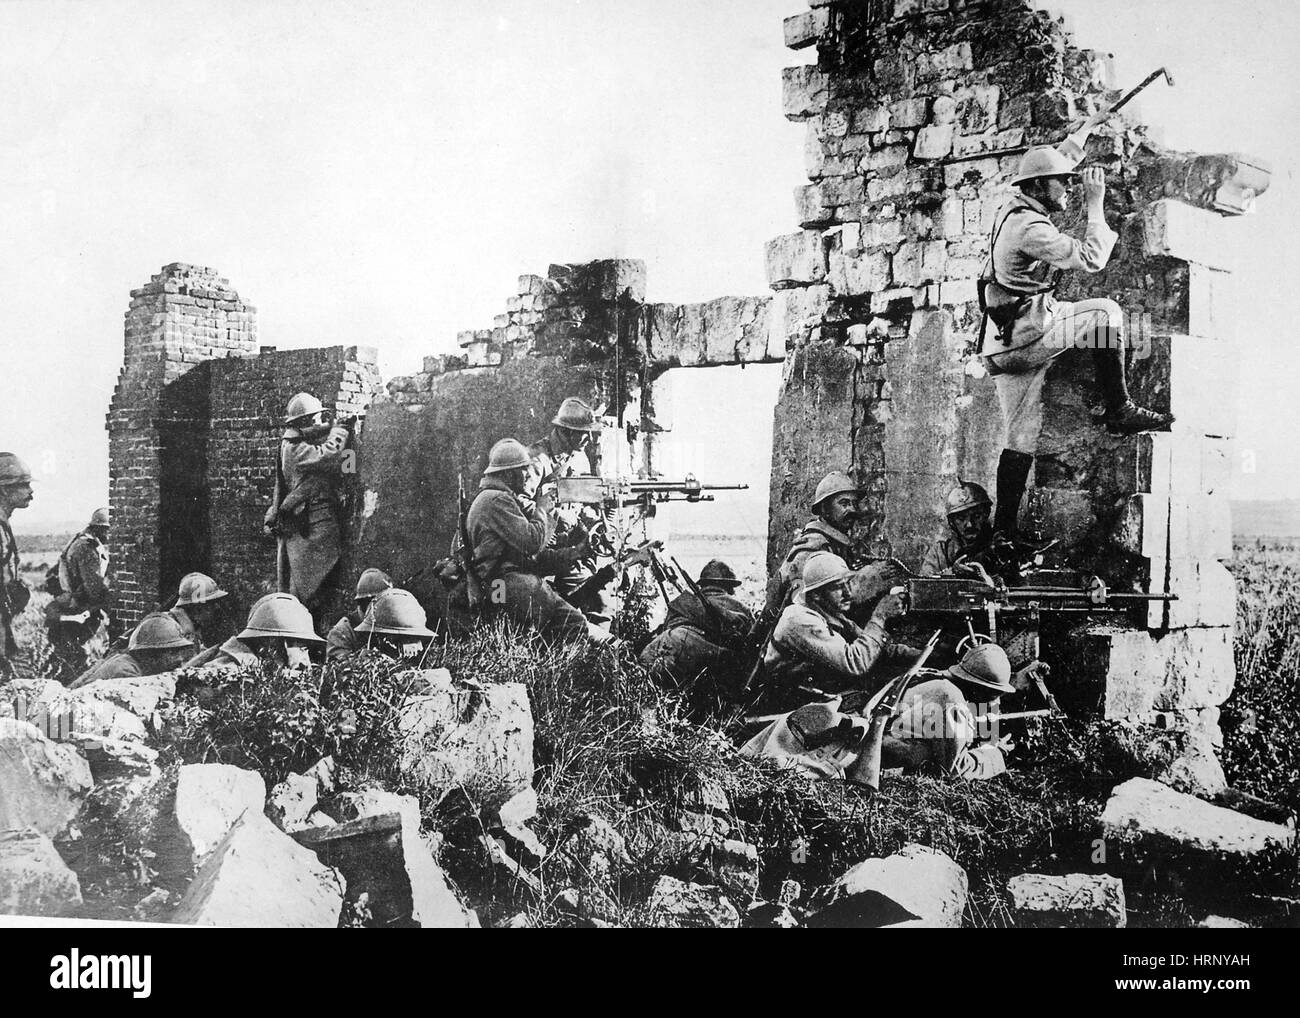 WWI, Second Battle of the Marne, 1918 - Stock Image